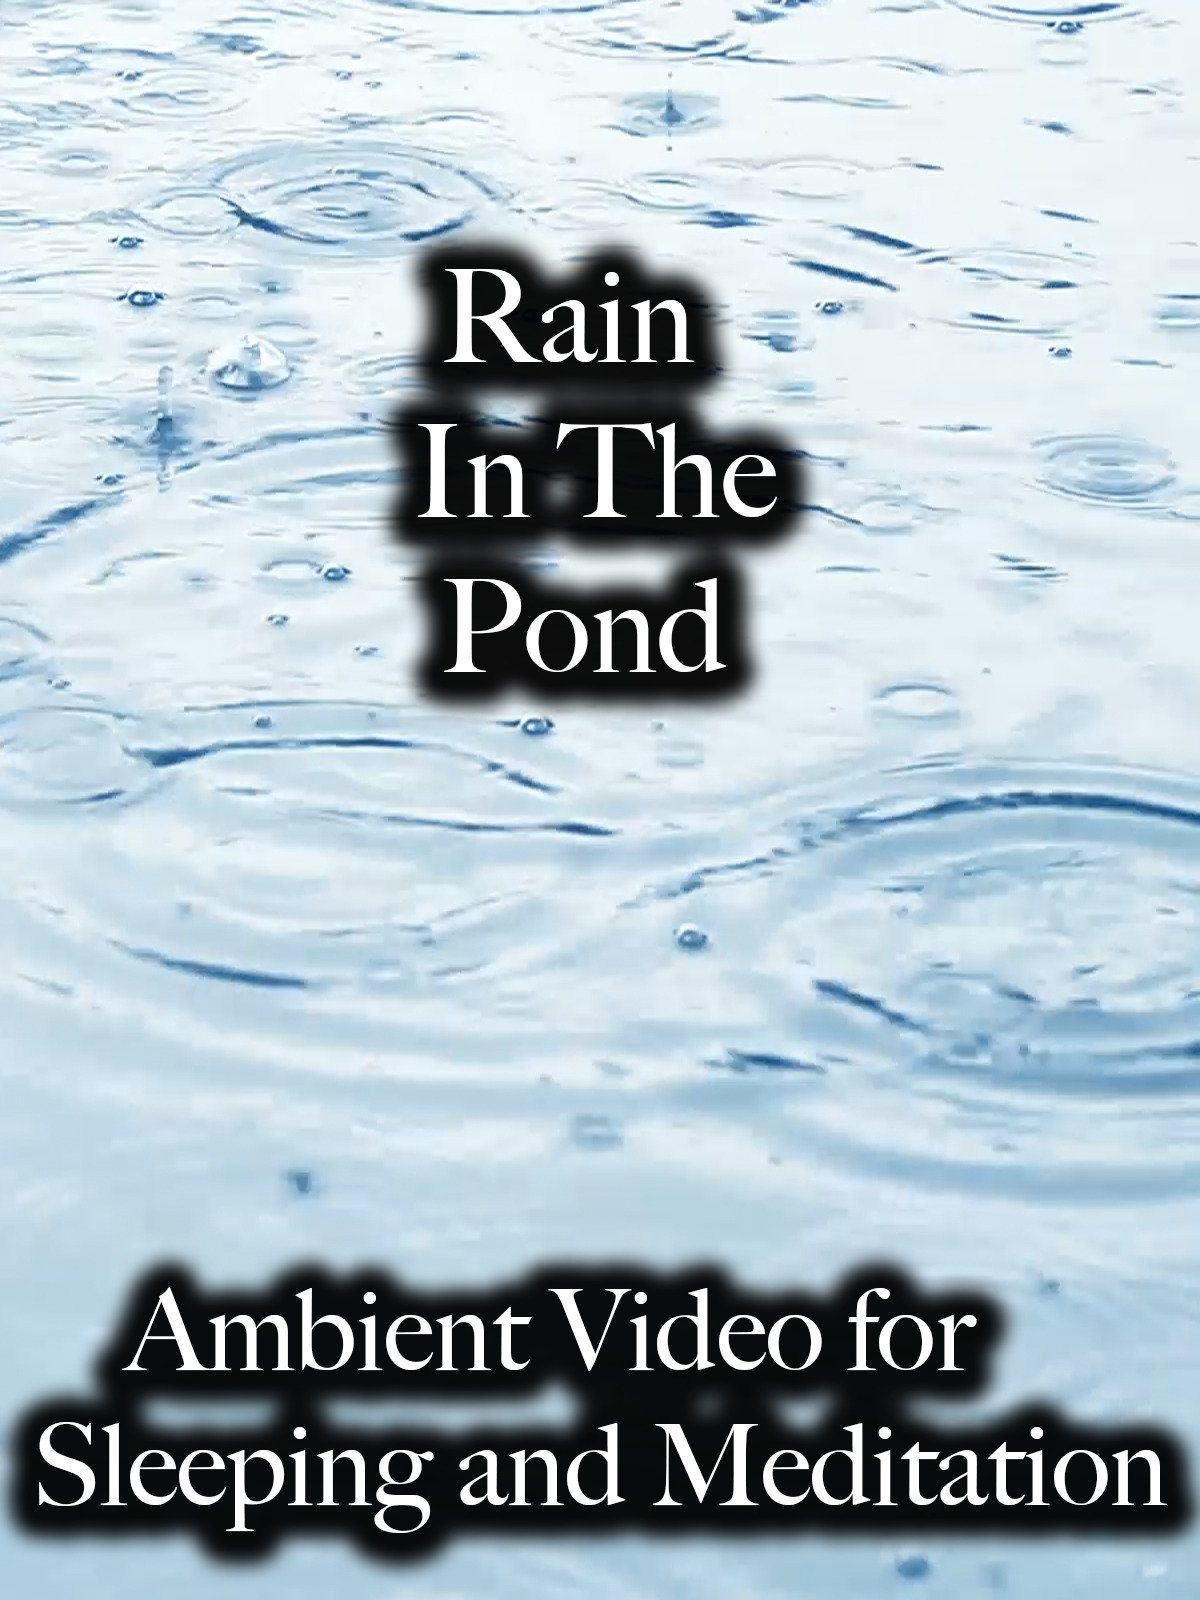 Rain In The Pond Ambient Video for Sleeping and Meditation